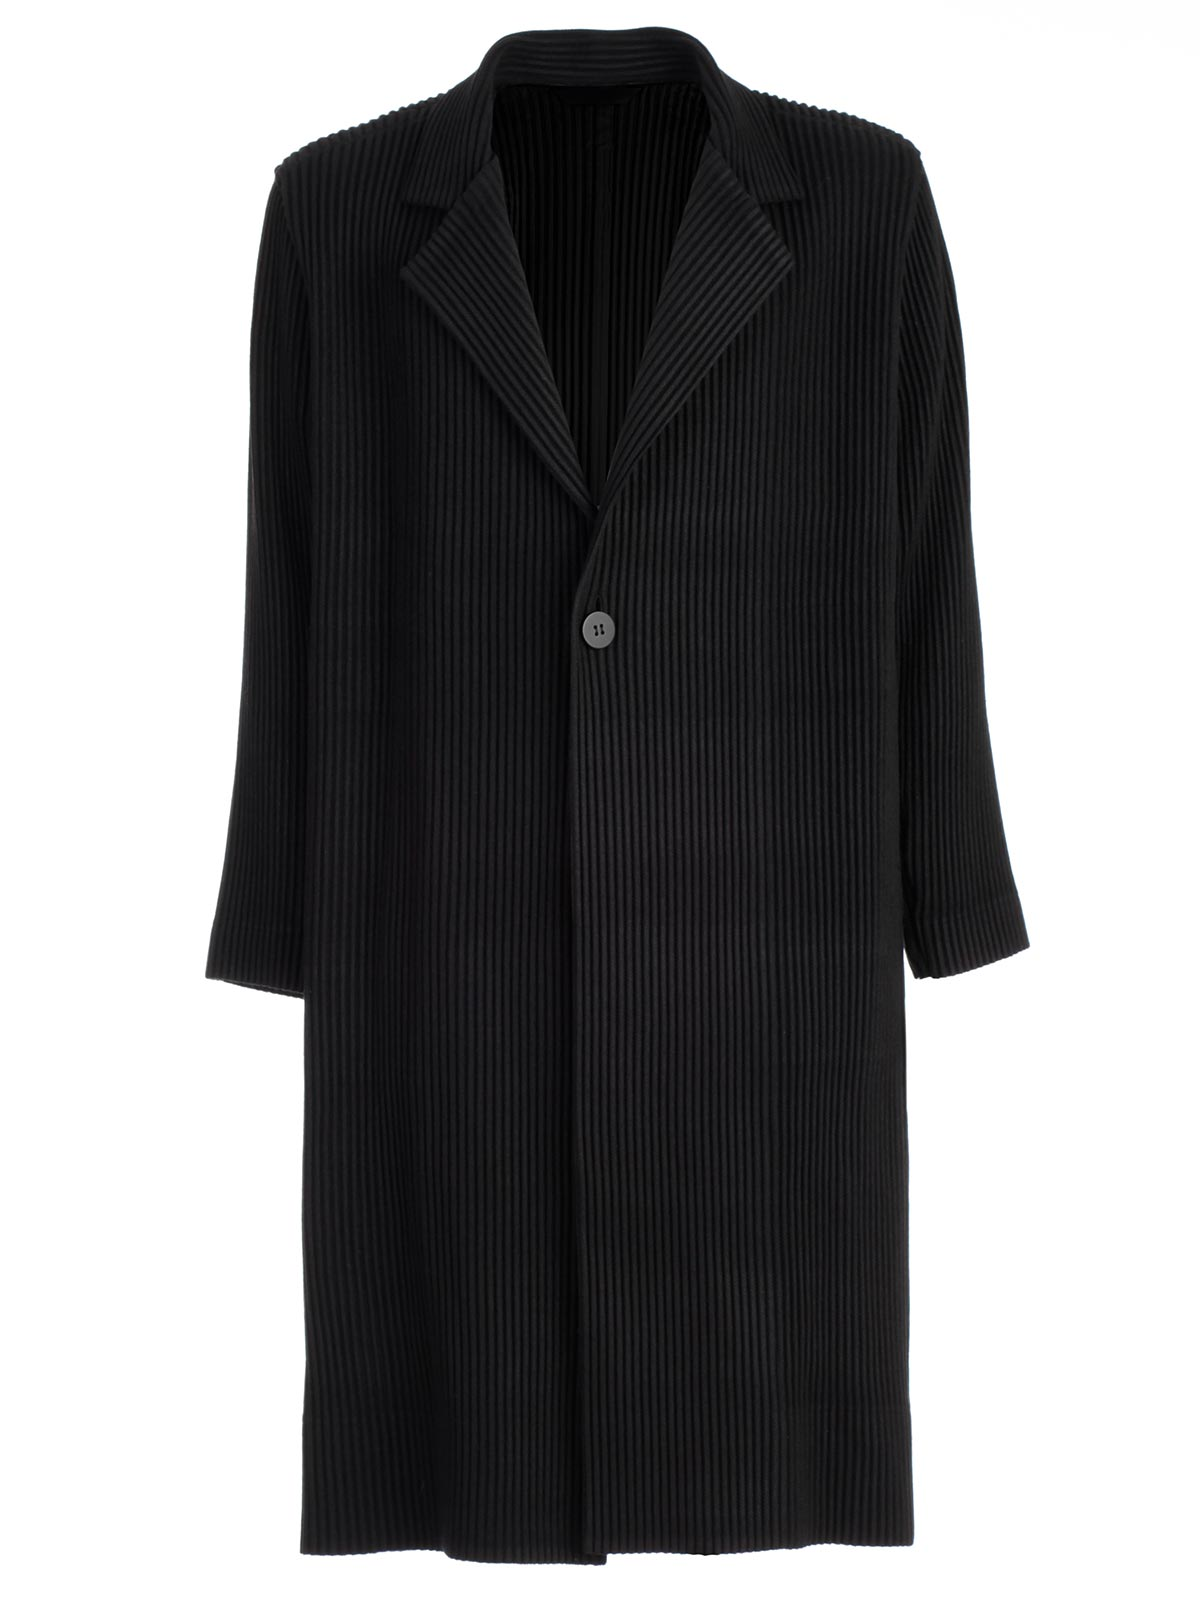 Picture of Pleats Please By Issey Miyake Coat